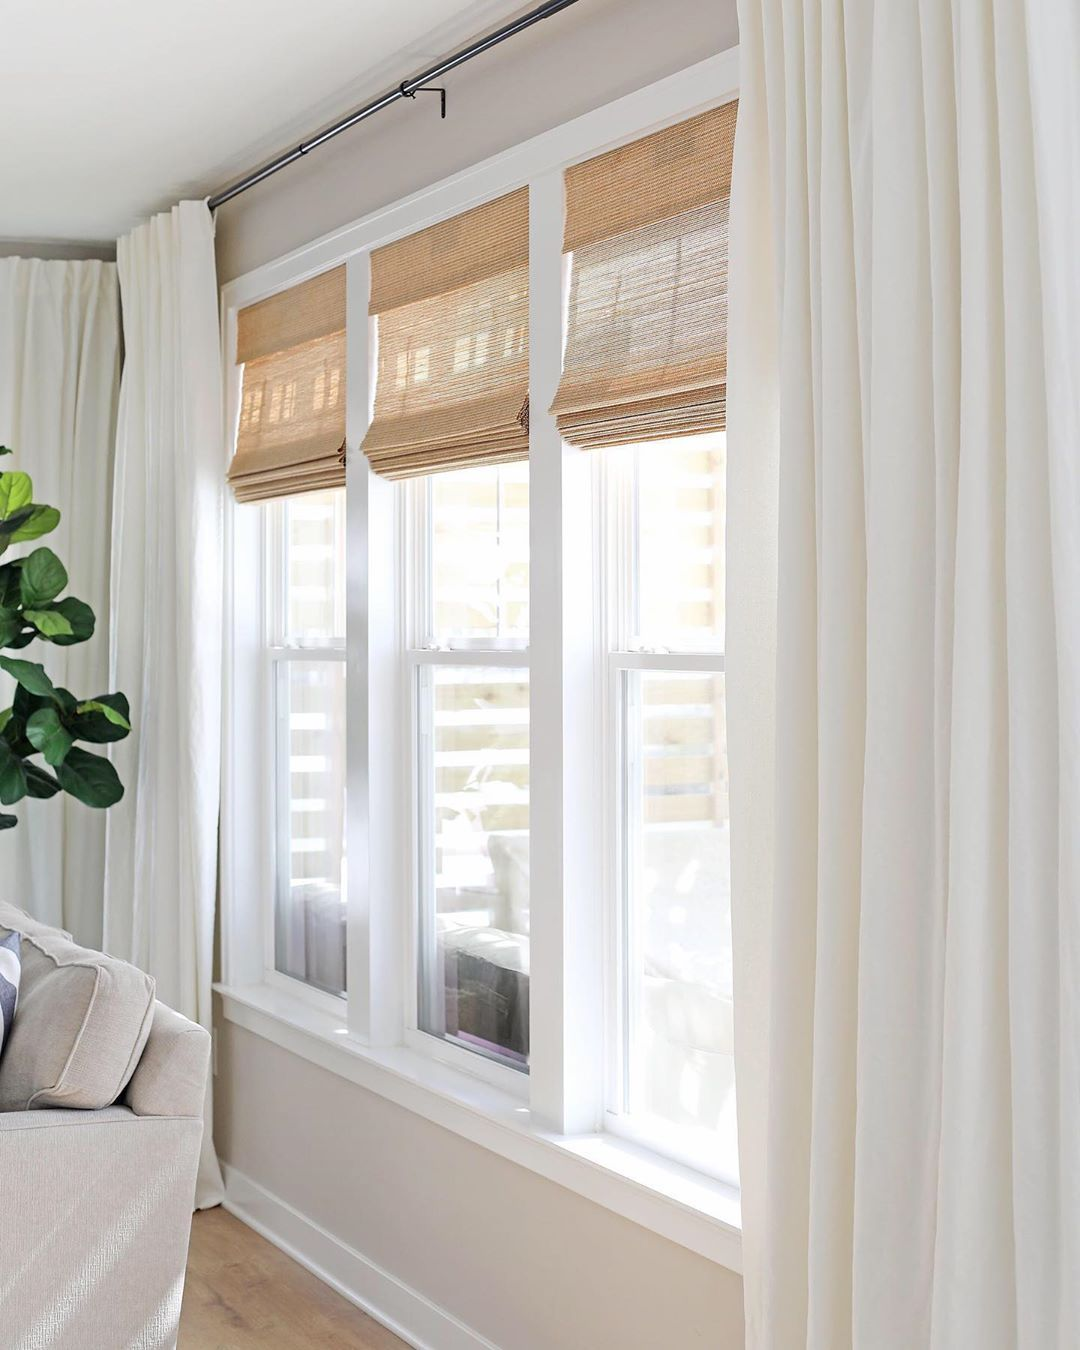 100 Stylish Window Treatments For Large Windows In A Modern Concept Big Windows Living Room Window Treatments Living Room Living Room Windows